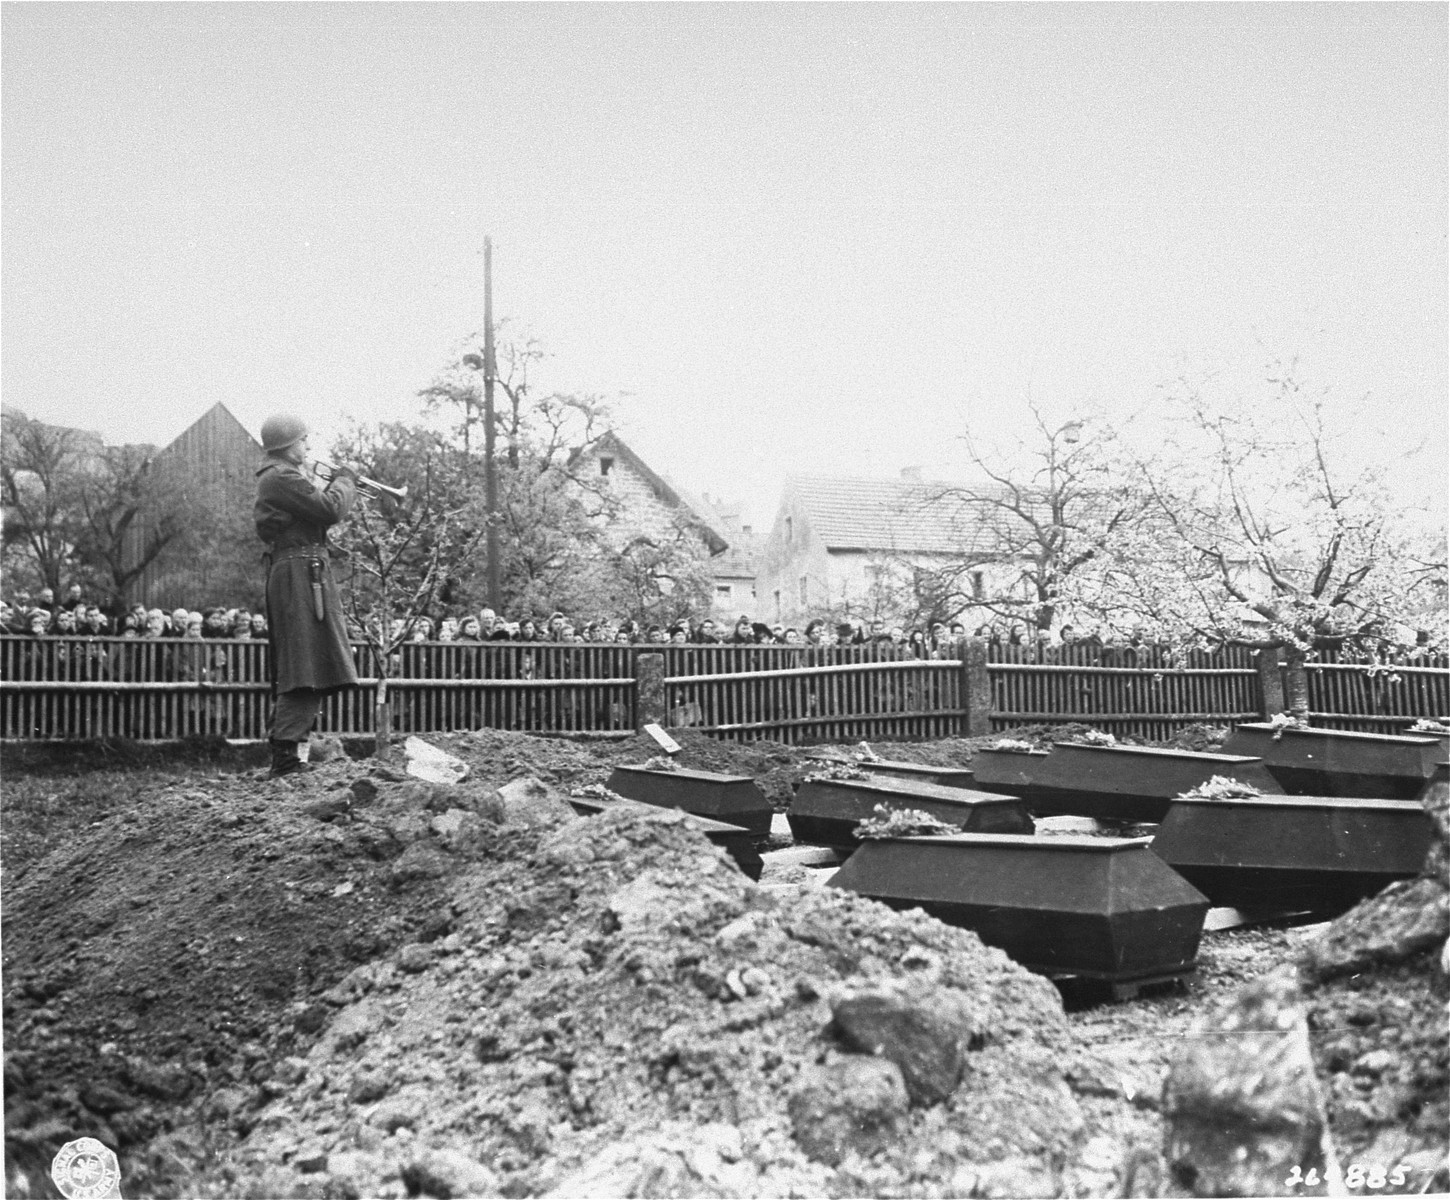 Tec Sgt. 4 James F. Flaha, of the 97th Infantry Division band, blows taps over the graves of prisoners murdered in the Flossenbuerg concentration camp.    Residents of town of Flossenbuerg have been forced to witness the burial.